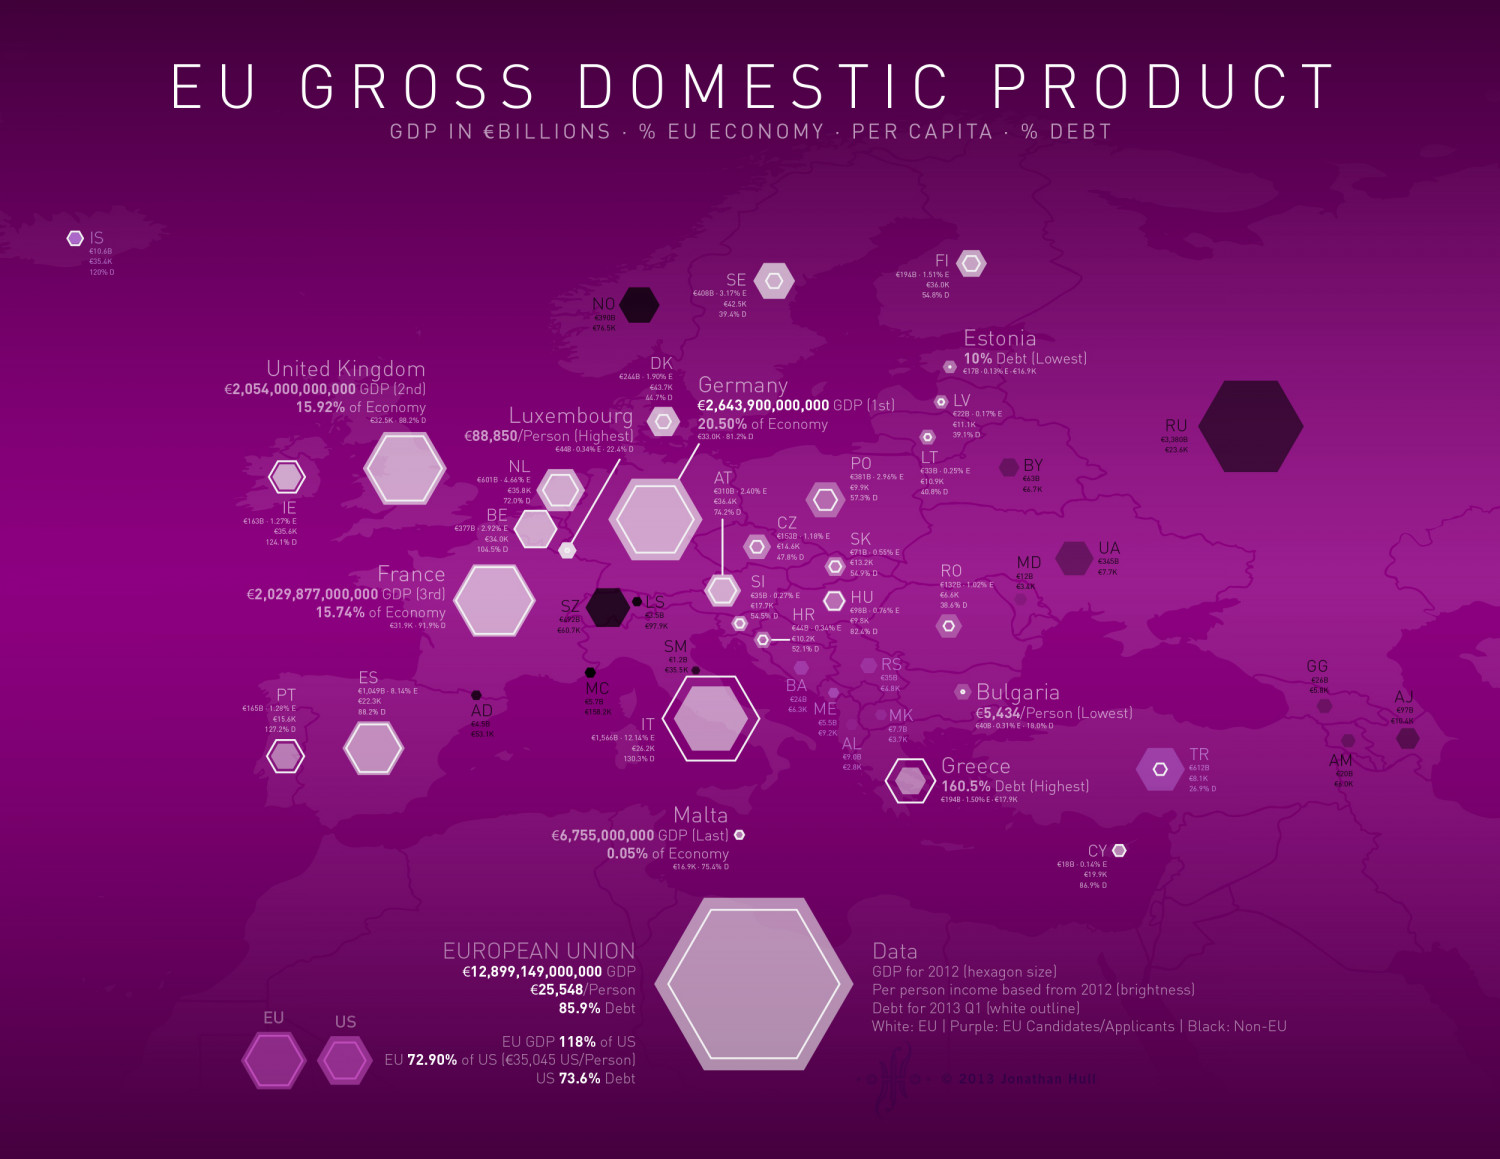 European Union Gross Domestic Product Infographic